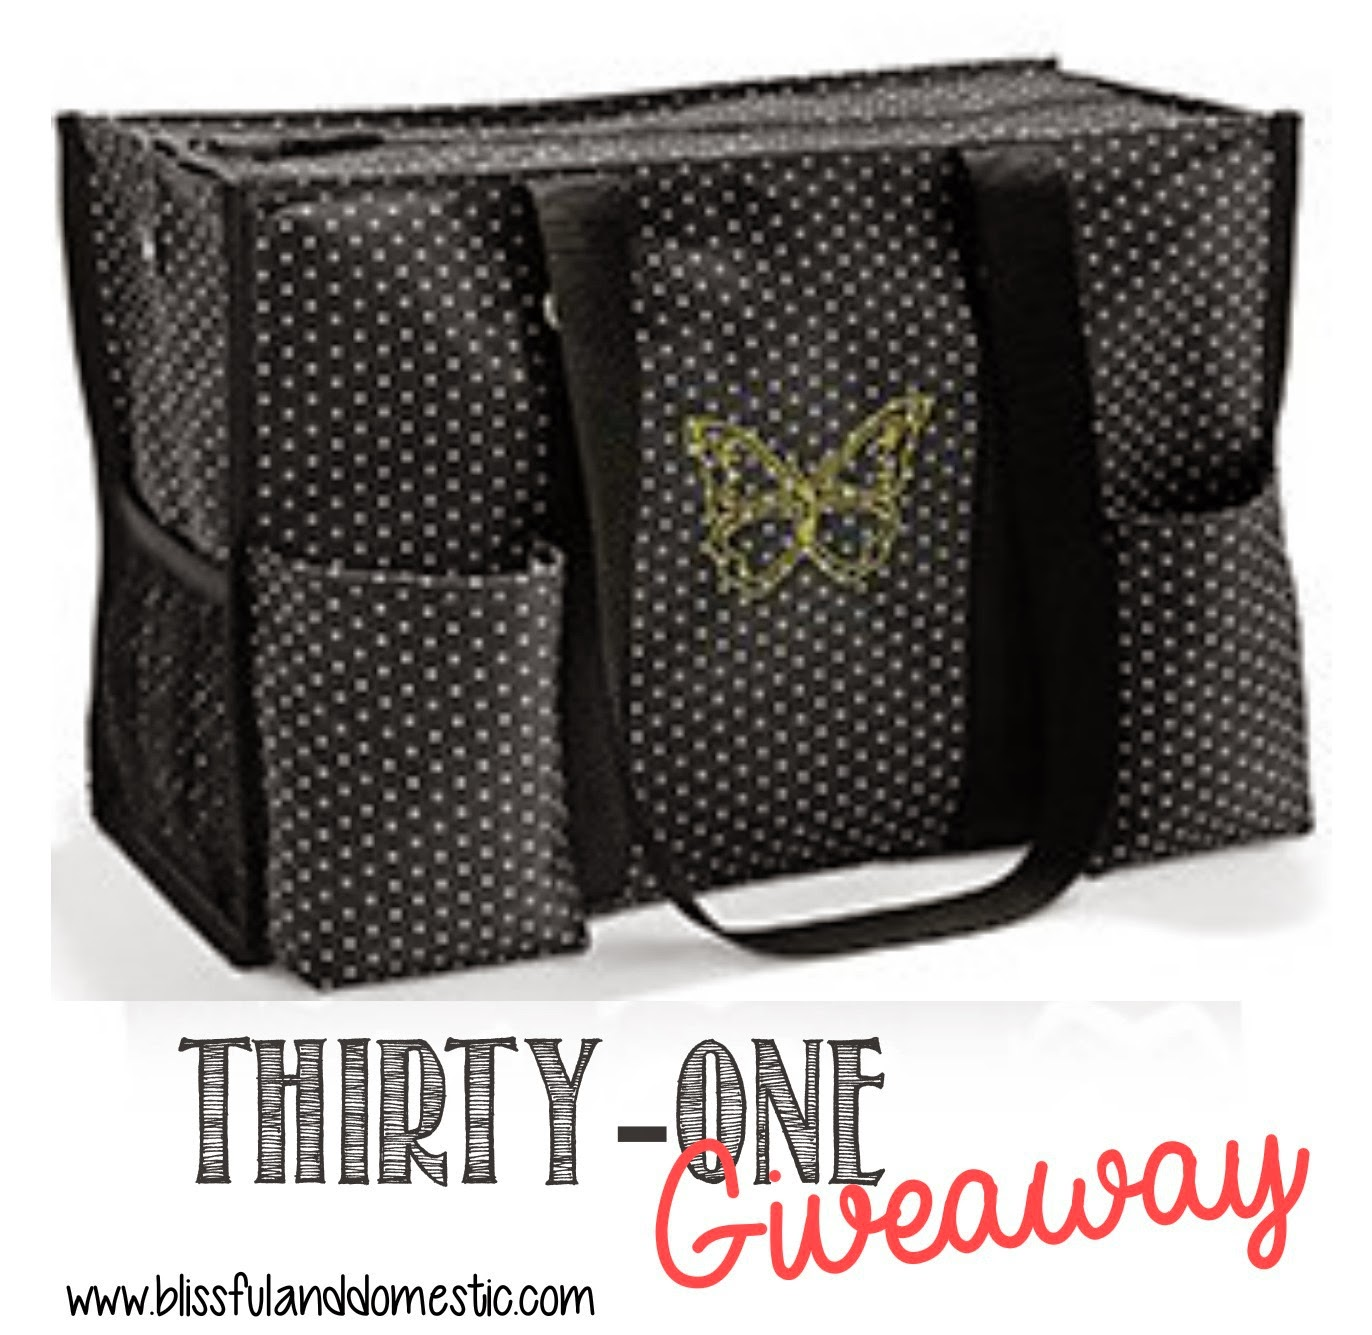 Thirty one november customer special 2014 - Thirty One Bags Giveaway